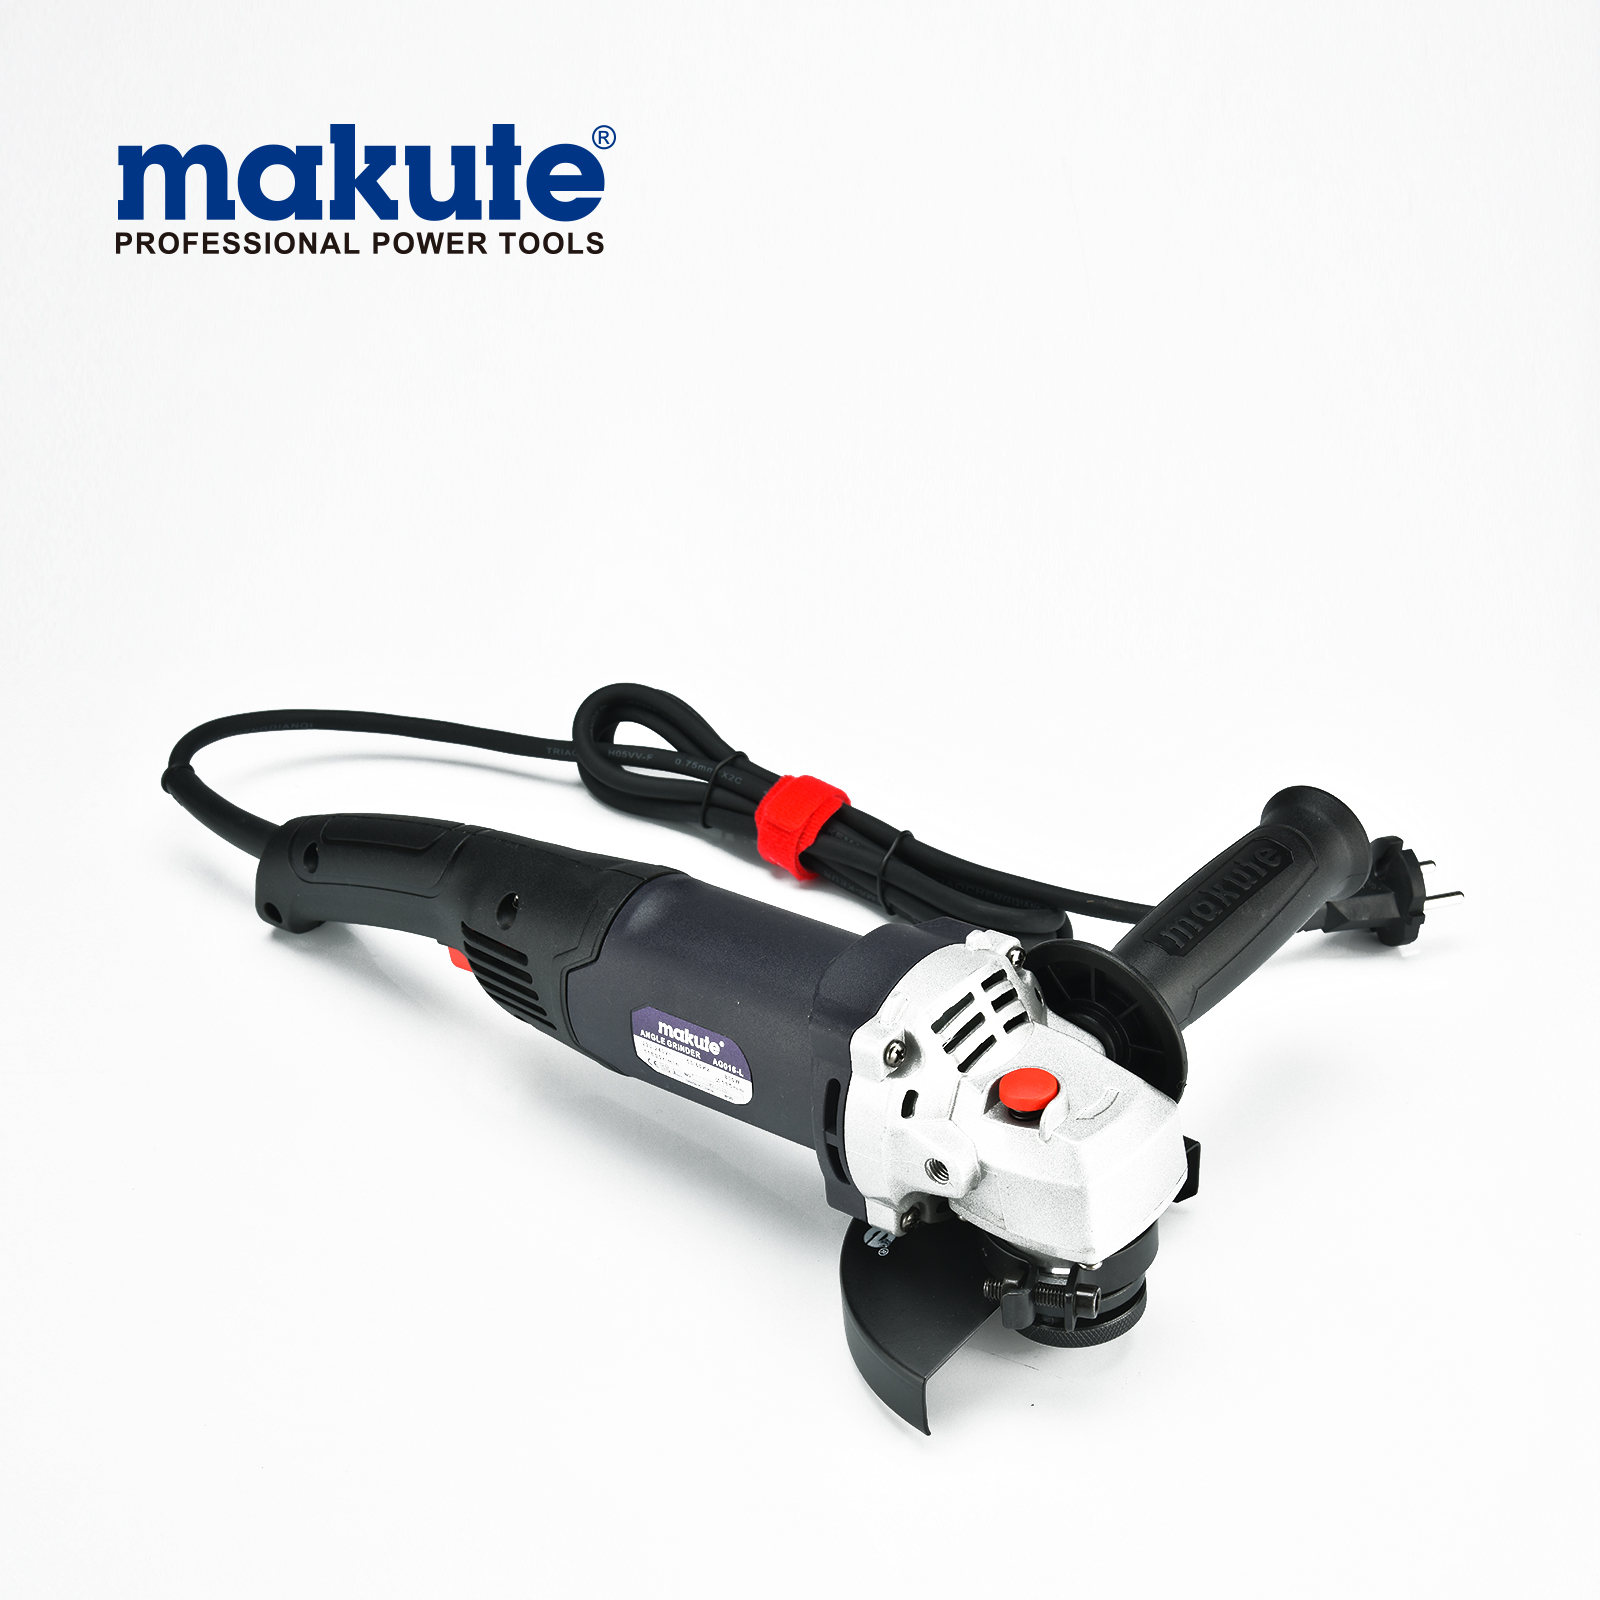 MAKUTE 100MM angle grinder professional power hand tools